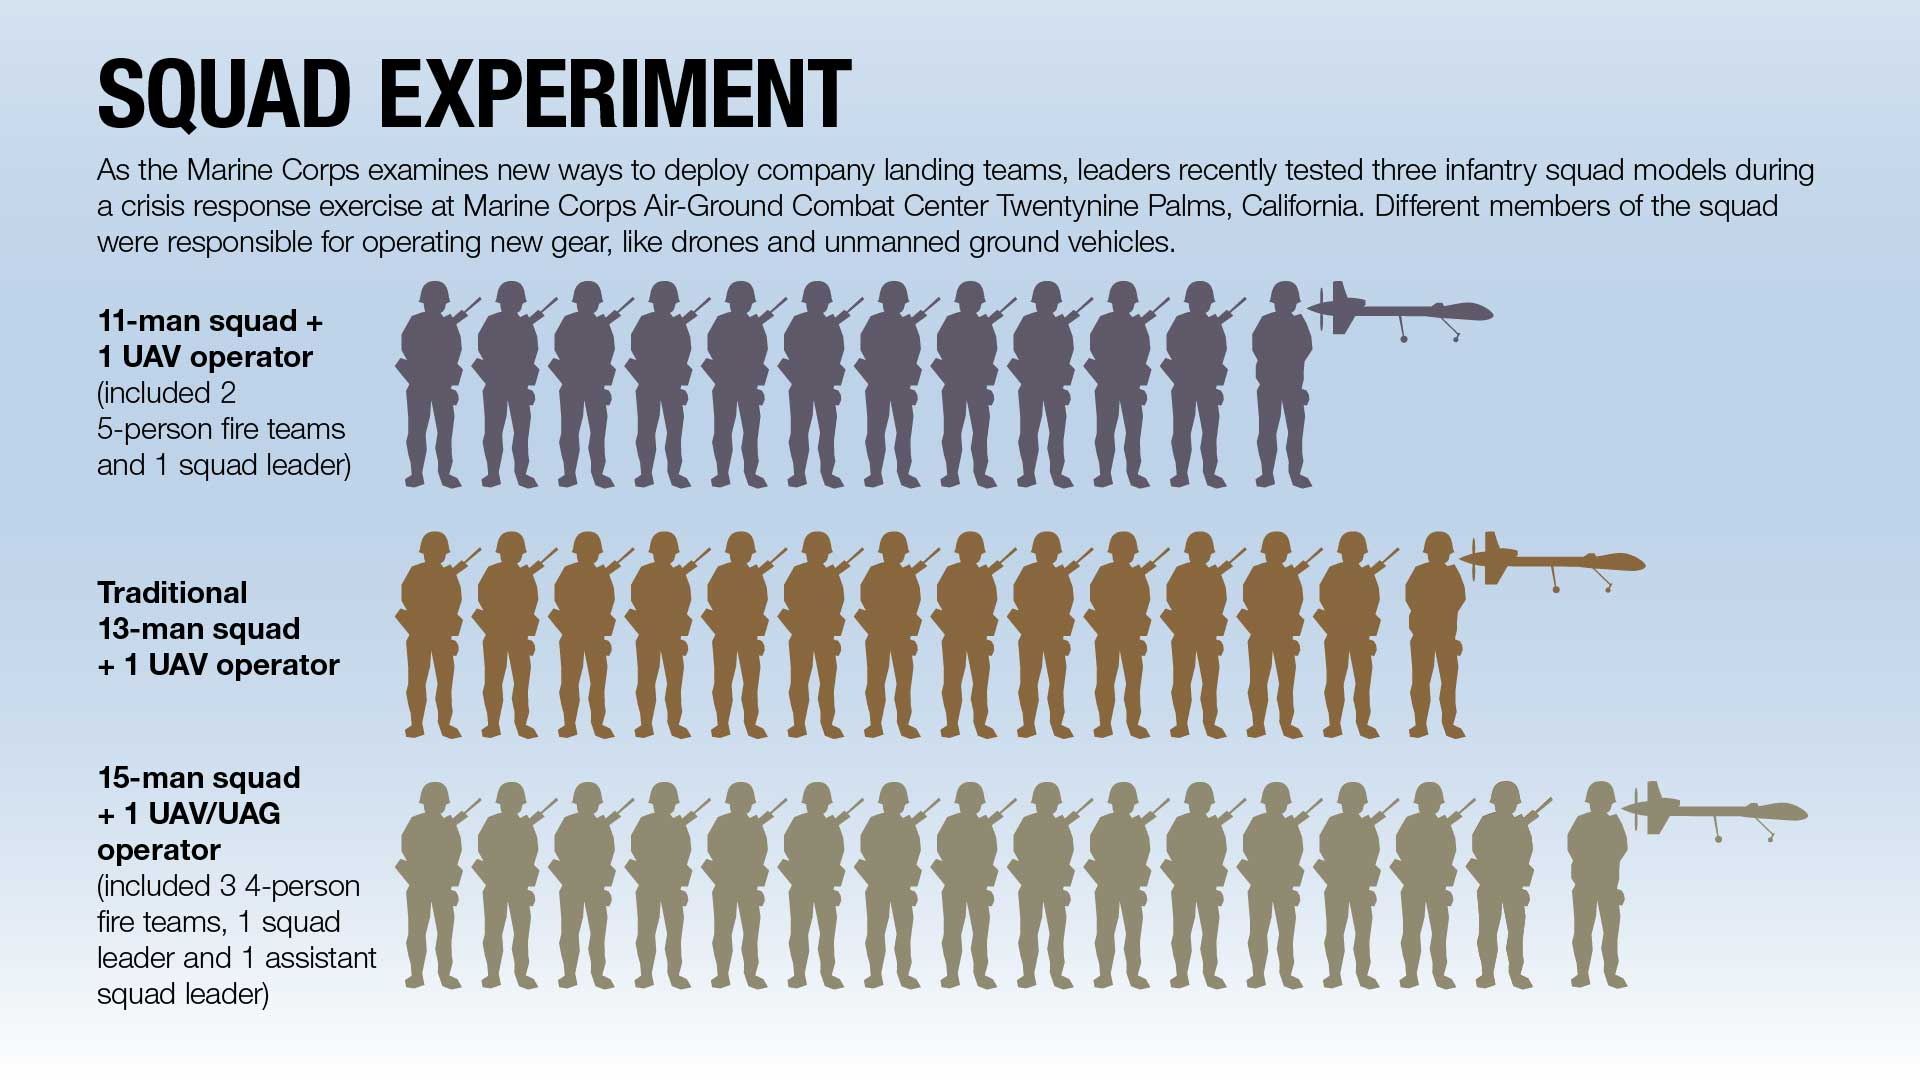 these grunts participating experiment could change way marines deploy high tech fighting